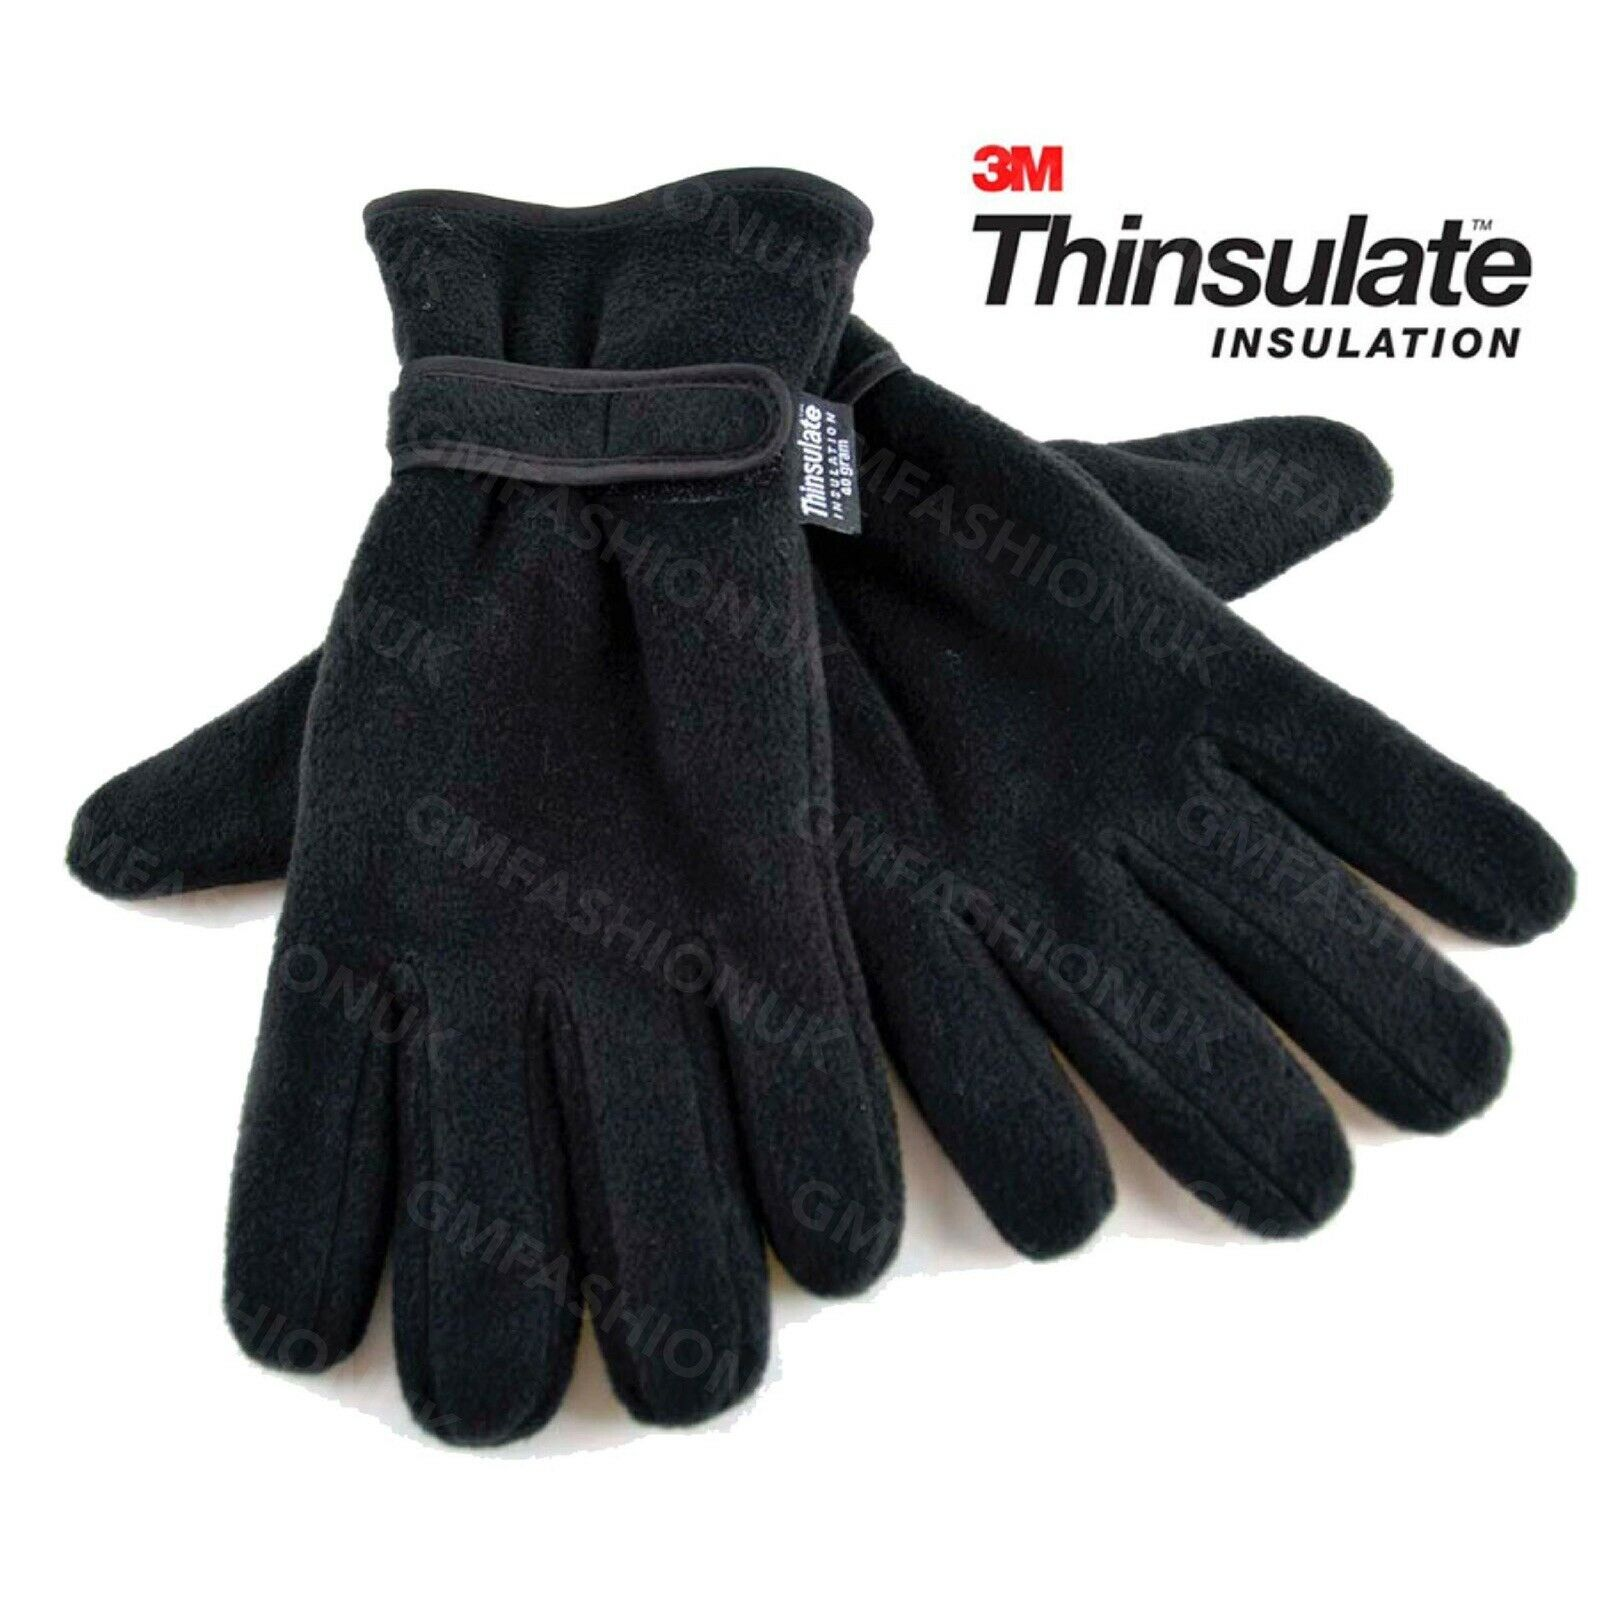 Mens Gloves Thinsulate Thermal Insulation Fleece Lined Adults Warm Winter Wear